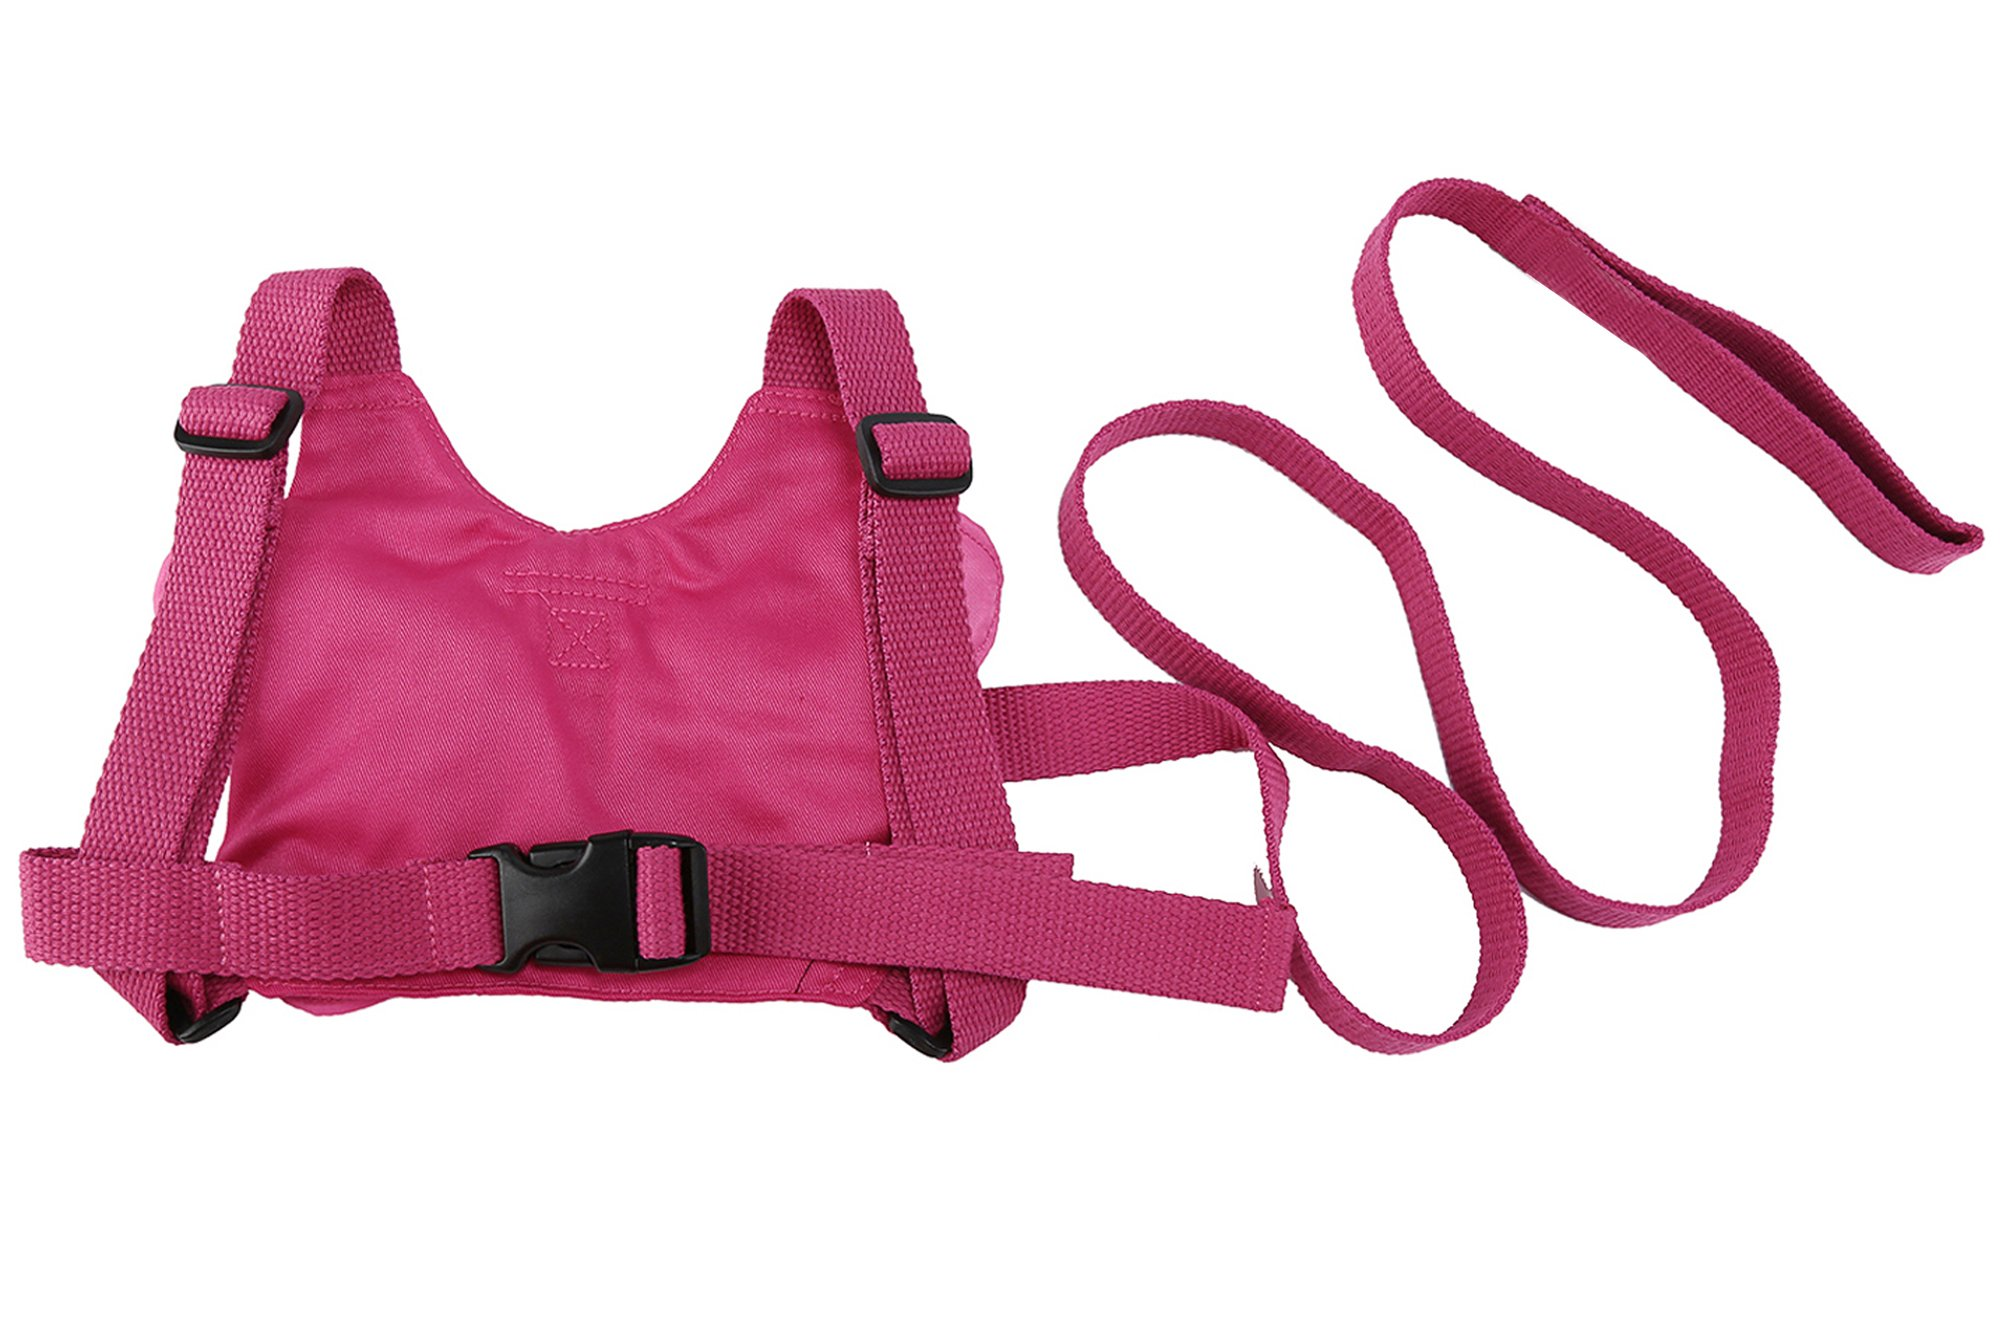 EPLAZA Baby Toddler Walking Safety Butterfly Belt Harness with Leash Child Kid Assistant Strap (a) by EPLAZA (Image #4)